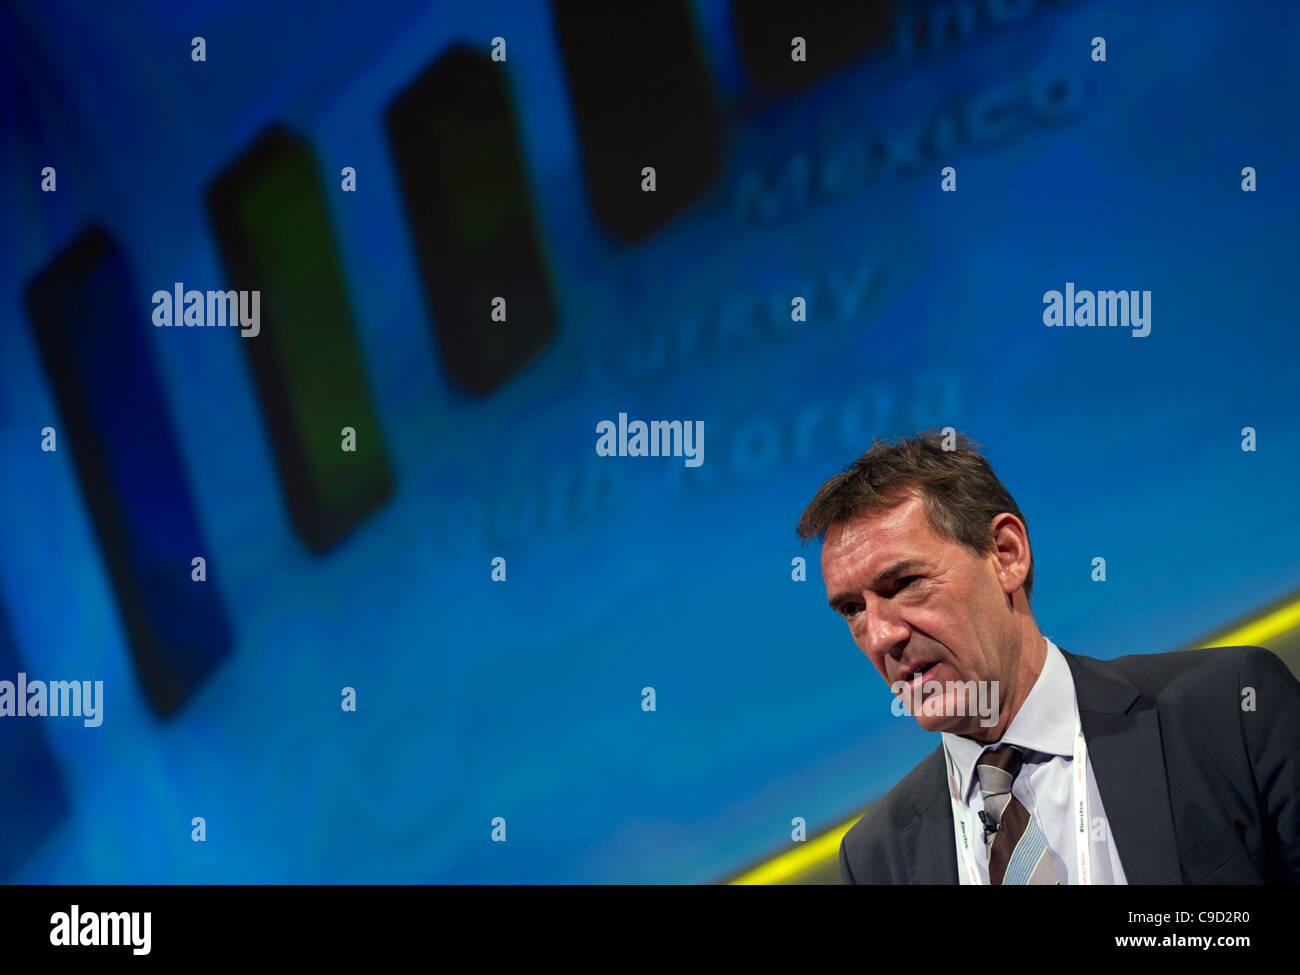 Jim O'Neill, Chairman of Goldman Sachs Asset Management speaks at a London business conference Stock Photo